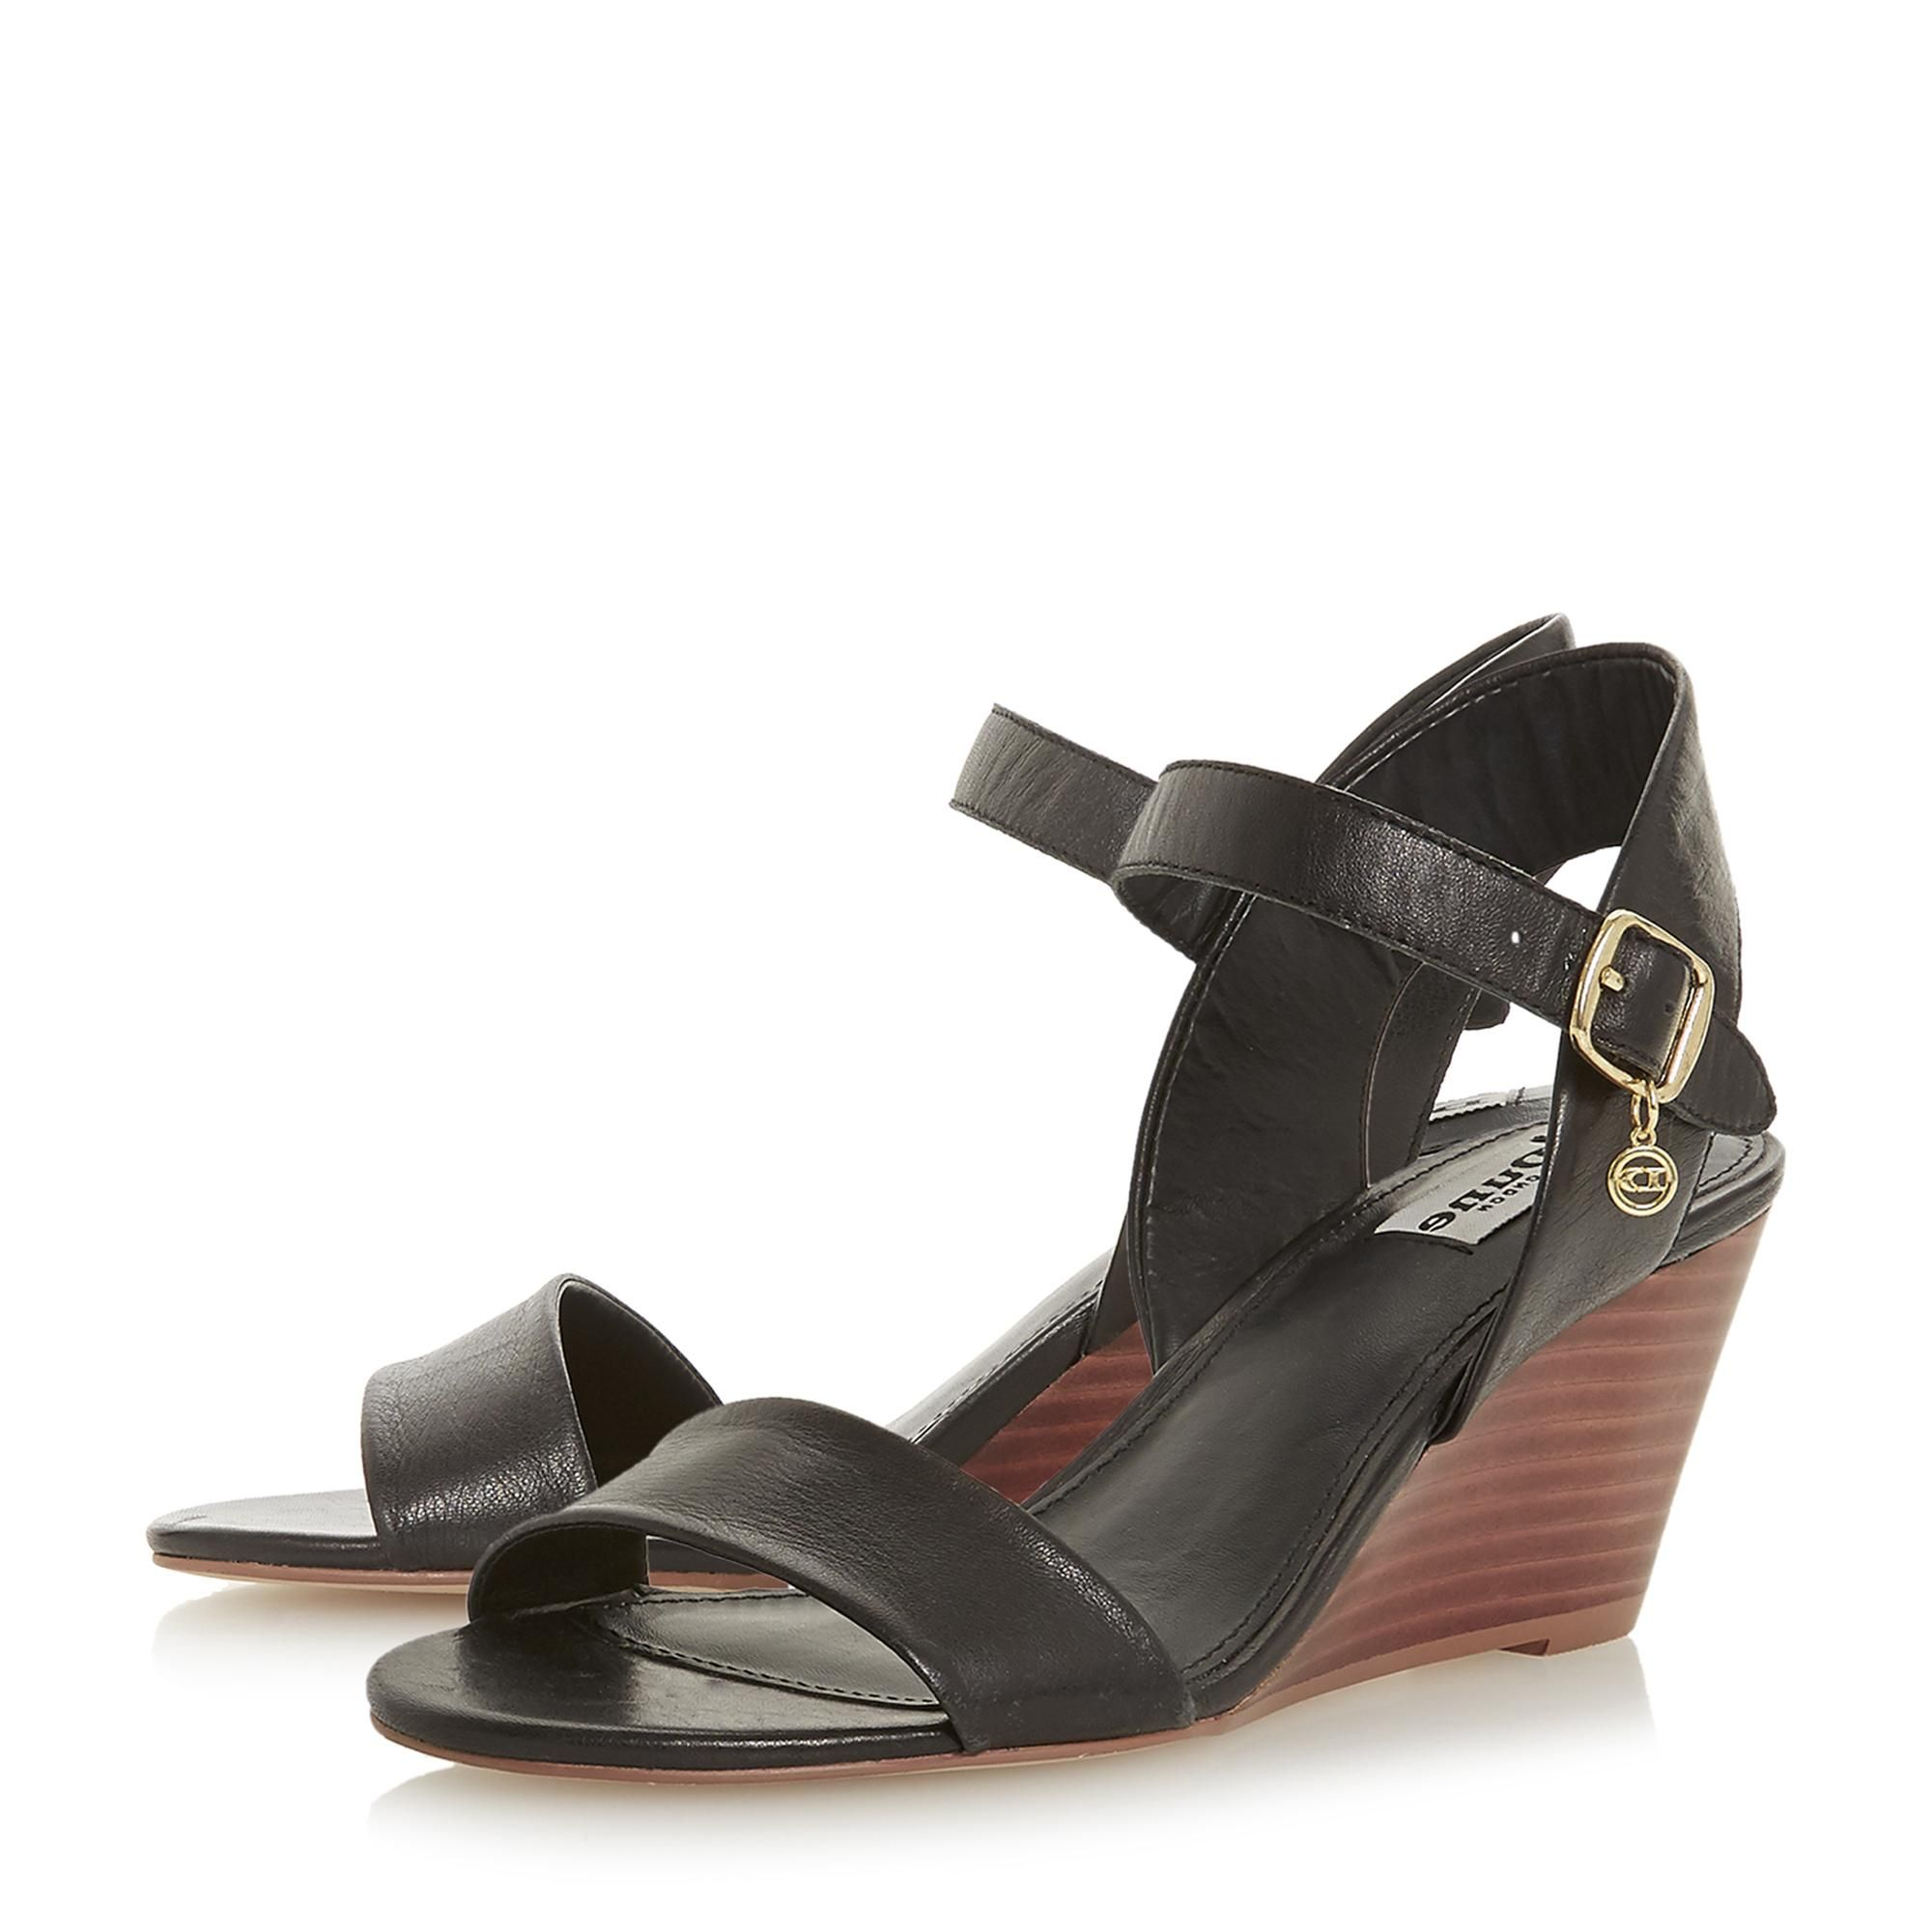 Dune Ladies KENDO Mid Stacked Wedge Heel Sandal